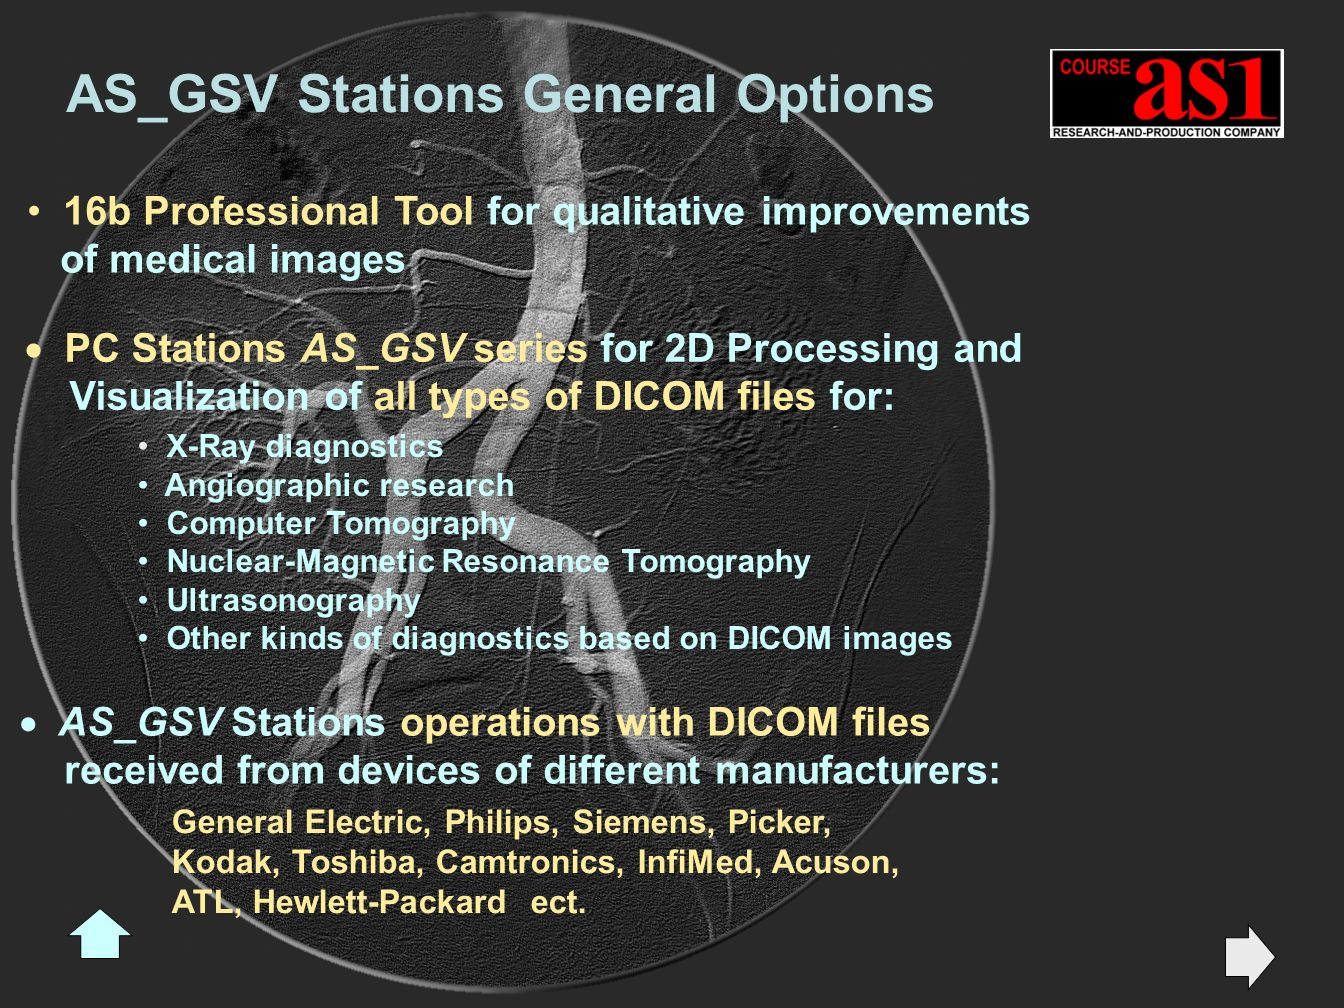 16b Professional Tool for qualitative improvements of medical images PC Stations AS_GSV series for 2D Processing and Visualization of all types of DICOM files for: X-Ray diagnostics Angiographic research Computer Tomography Nuclear-Magnetic Resonance Tomography Ultrasonography Other kinds of diagnostics based on DICOM images AS_GSV Stations operations with DICOM files received from devices of different manufacturers: AS_GSV Stations General Options General Electric, Philips, Siemens, Picker, Kodak, Toshiba, Camtronics, InfiMed, Acuson, ATL, Hewlett-Packard ect.